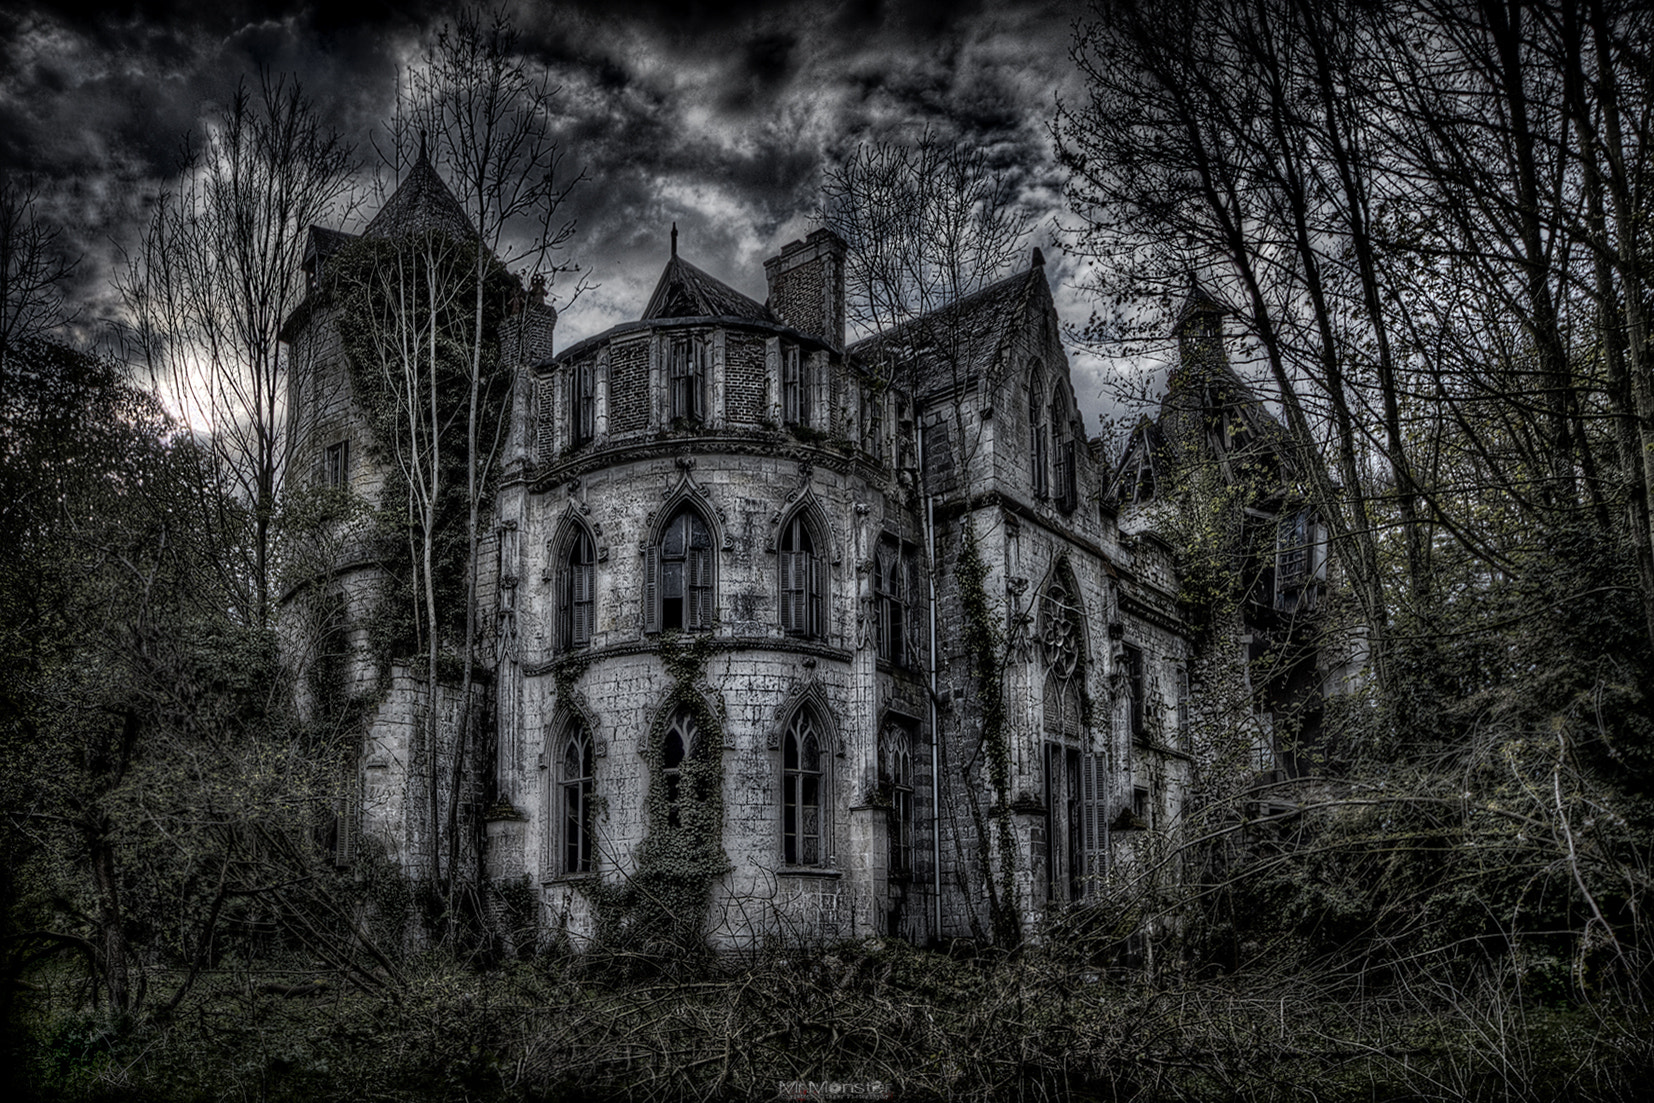 Photograph creepy chateau clochard by Christoph Klinger on 500px